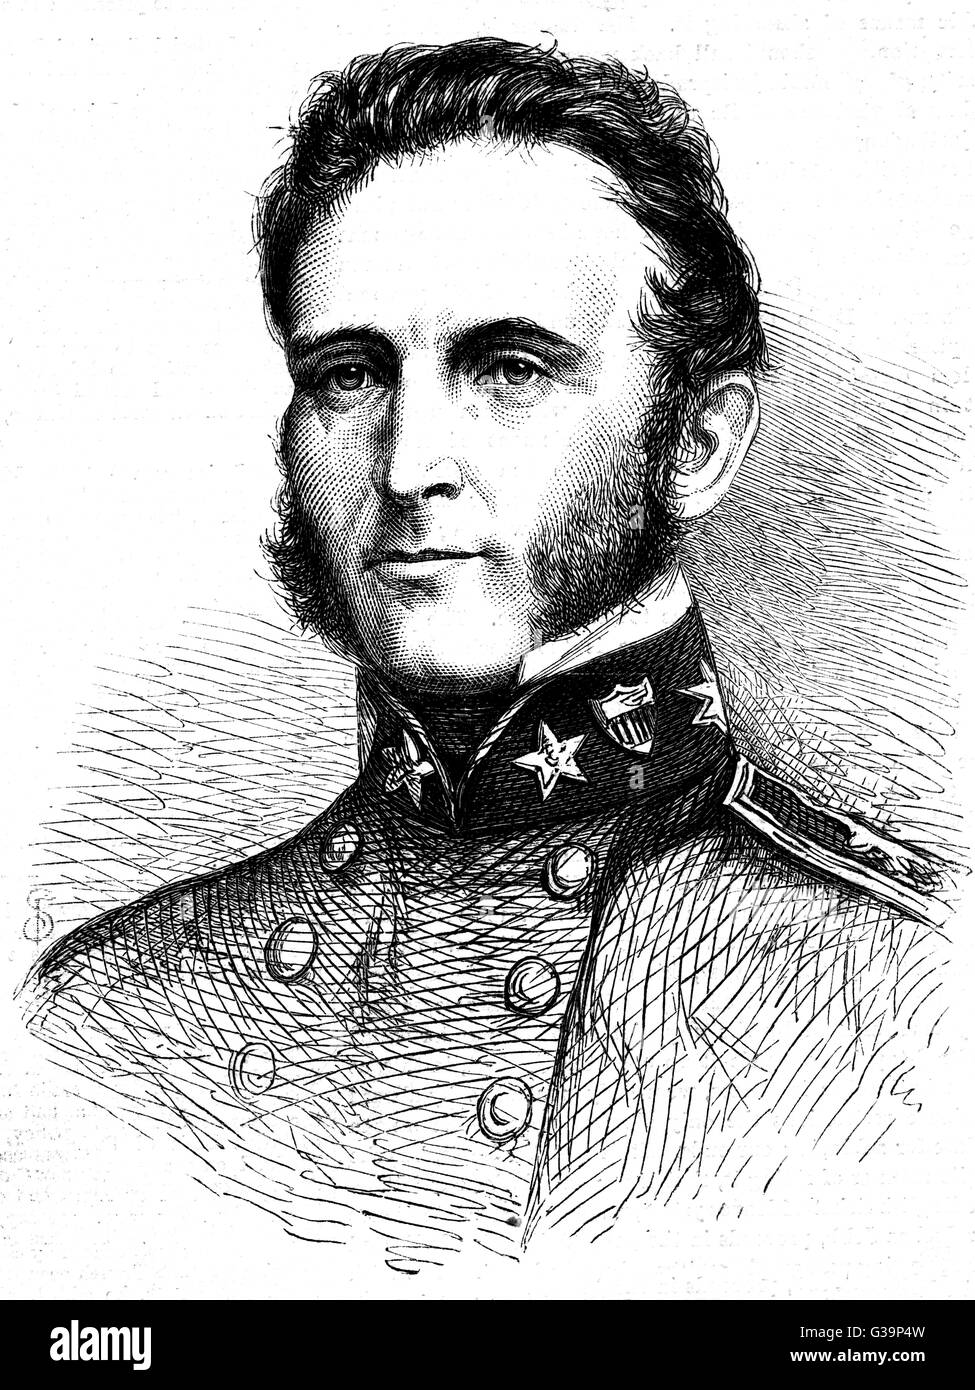 """thomas stonewall jackson essay The life of general stonewall jackson by mary l williamson essay sample introduction """"the life of stonewall jackson"""" written by mary l williamson is about the calling of stonewall jackson as an officer and general in the confederate army the paper tackles the life of thomas jackson the field vocabulary and short sentences give a."""